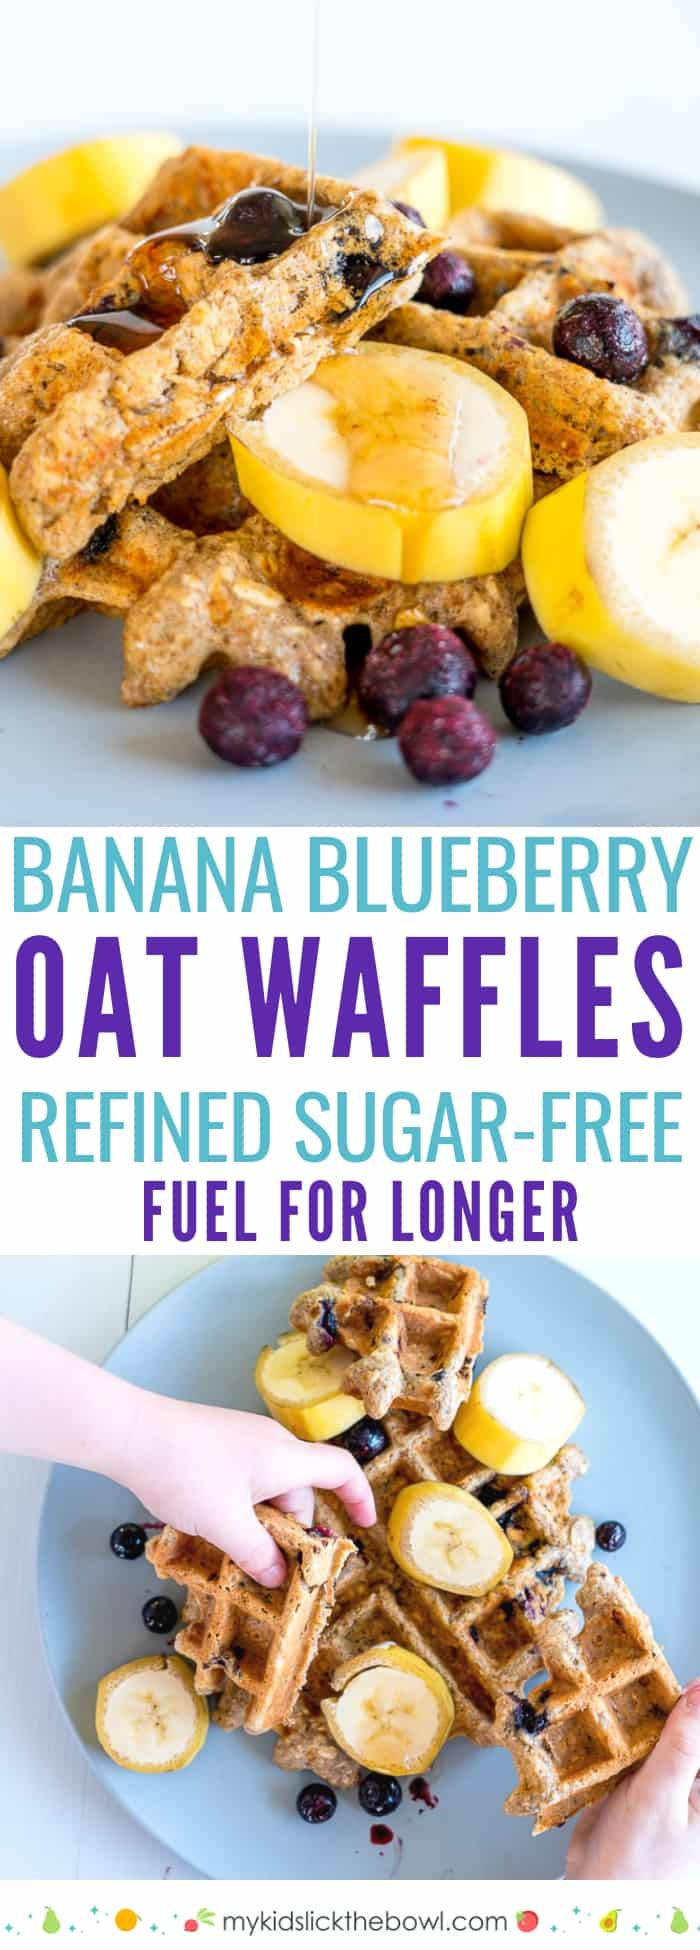 An easy healthy waffle recipe, made with whole wheat and oats, flavoured with banana and blueberries, a delicious high protein and fibre breakfast, snack or for lunchboxes#waffles #breakfast #breakfastrecipes #cleaneating #healthyrecipes #healthydiets #healthysnacks